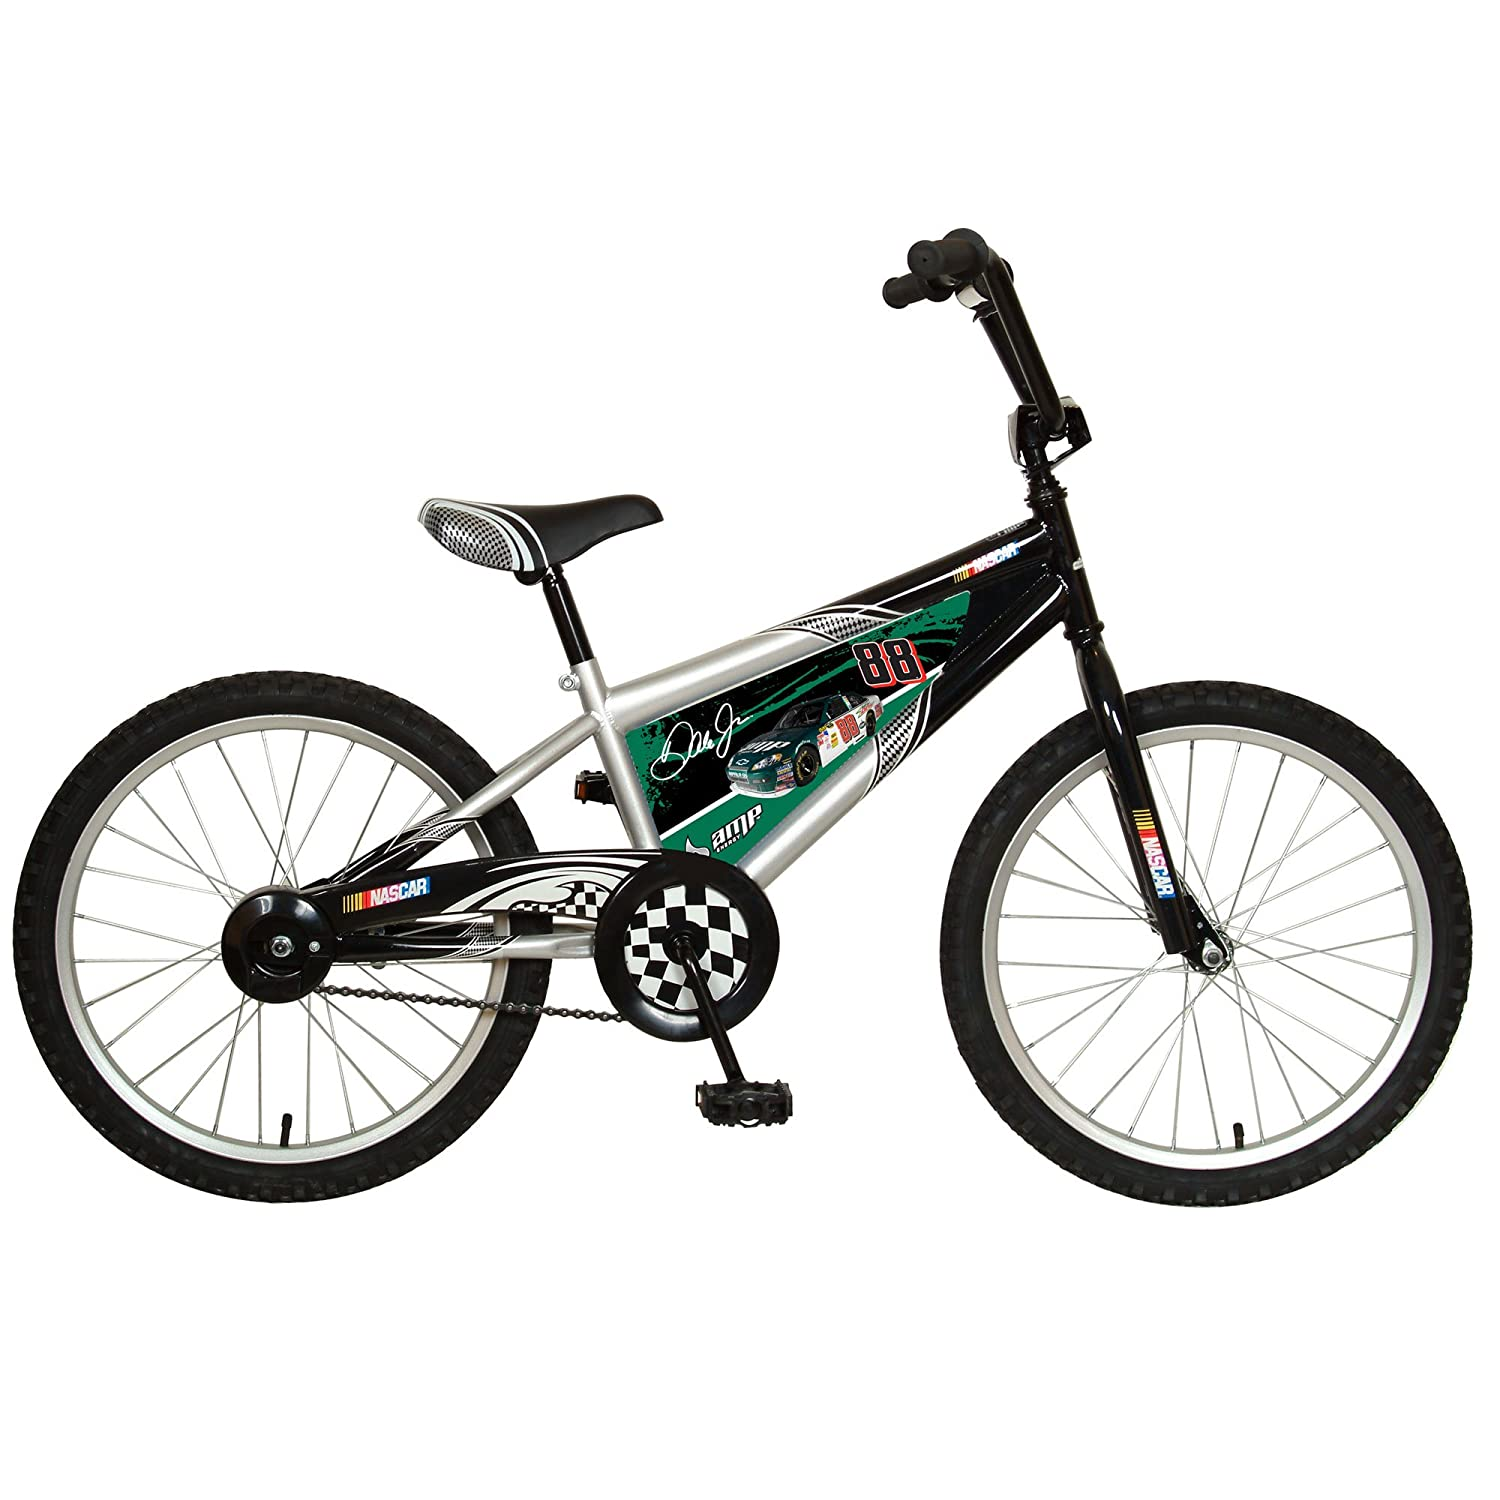 Amazon.com : NASCAR Dale Junior 20-Inch Bicycle : Childrens Bicycles : Sports & Outdoors